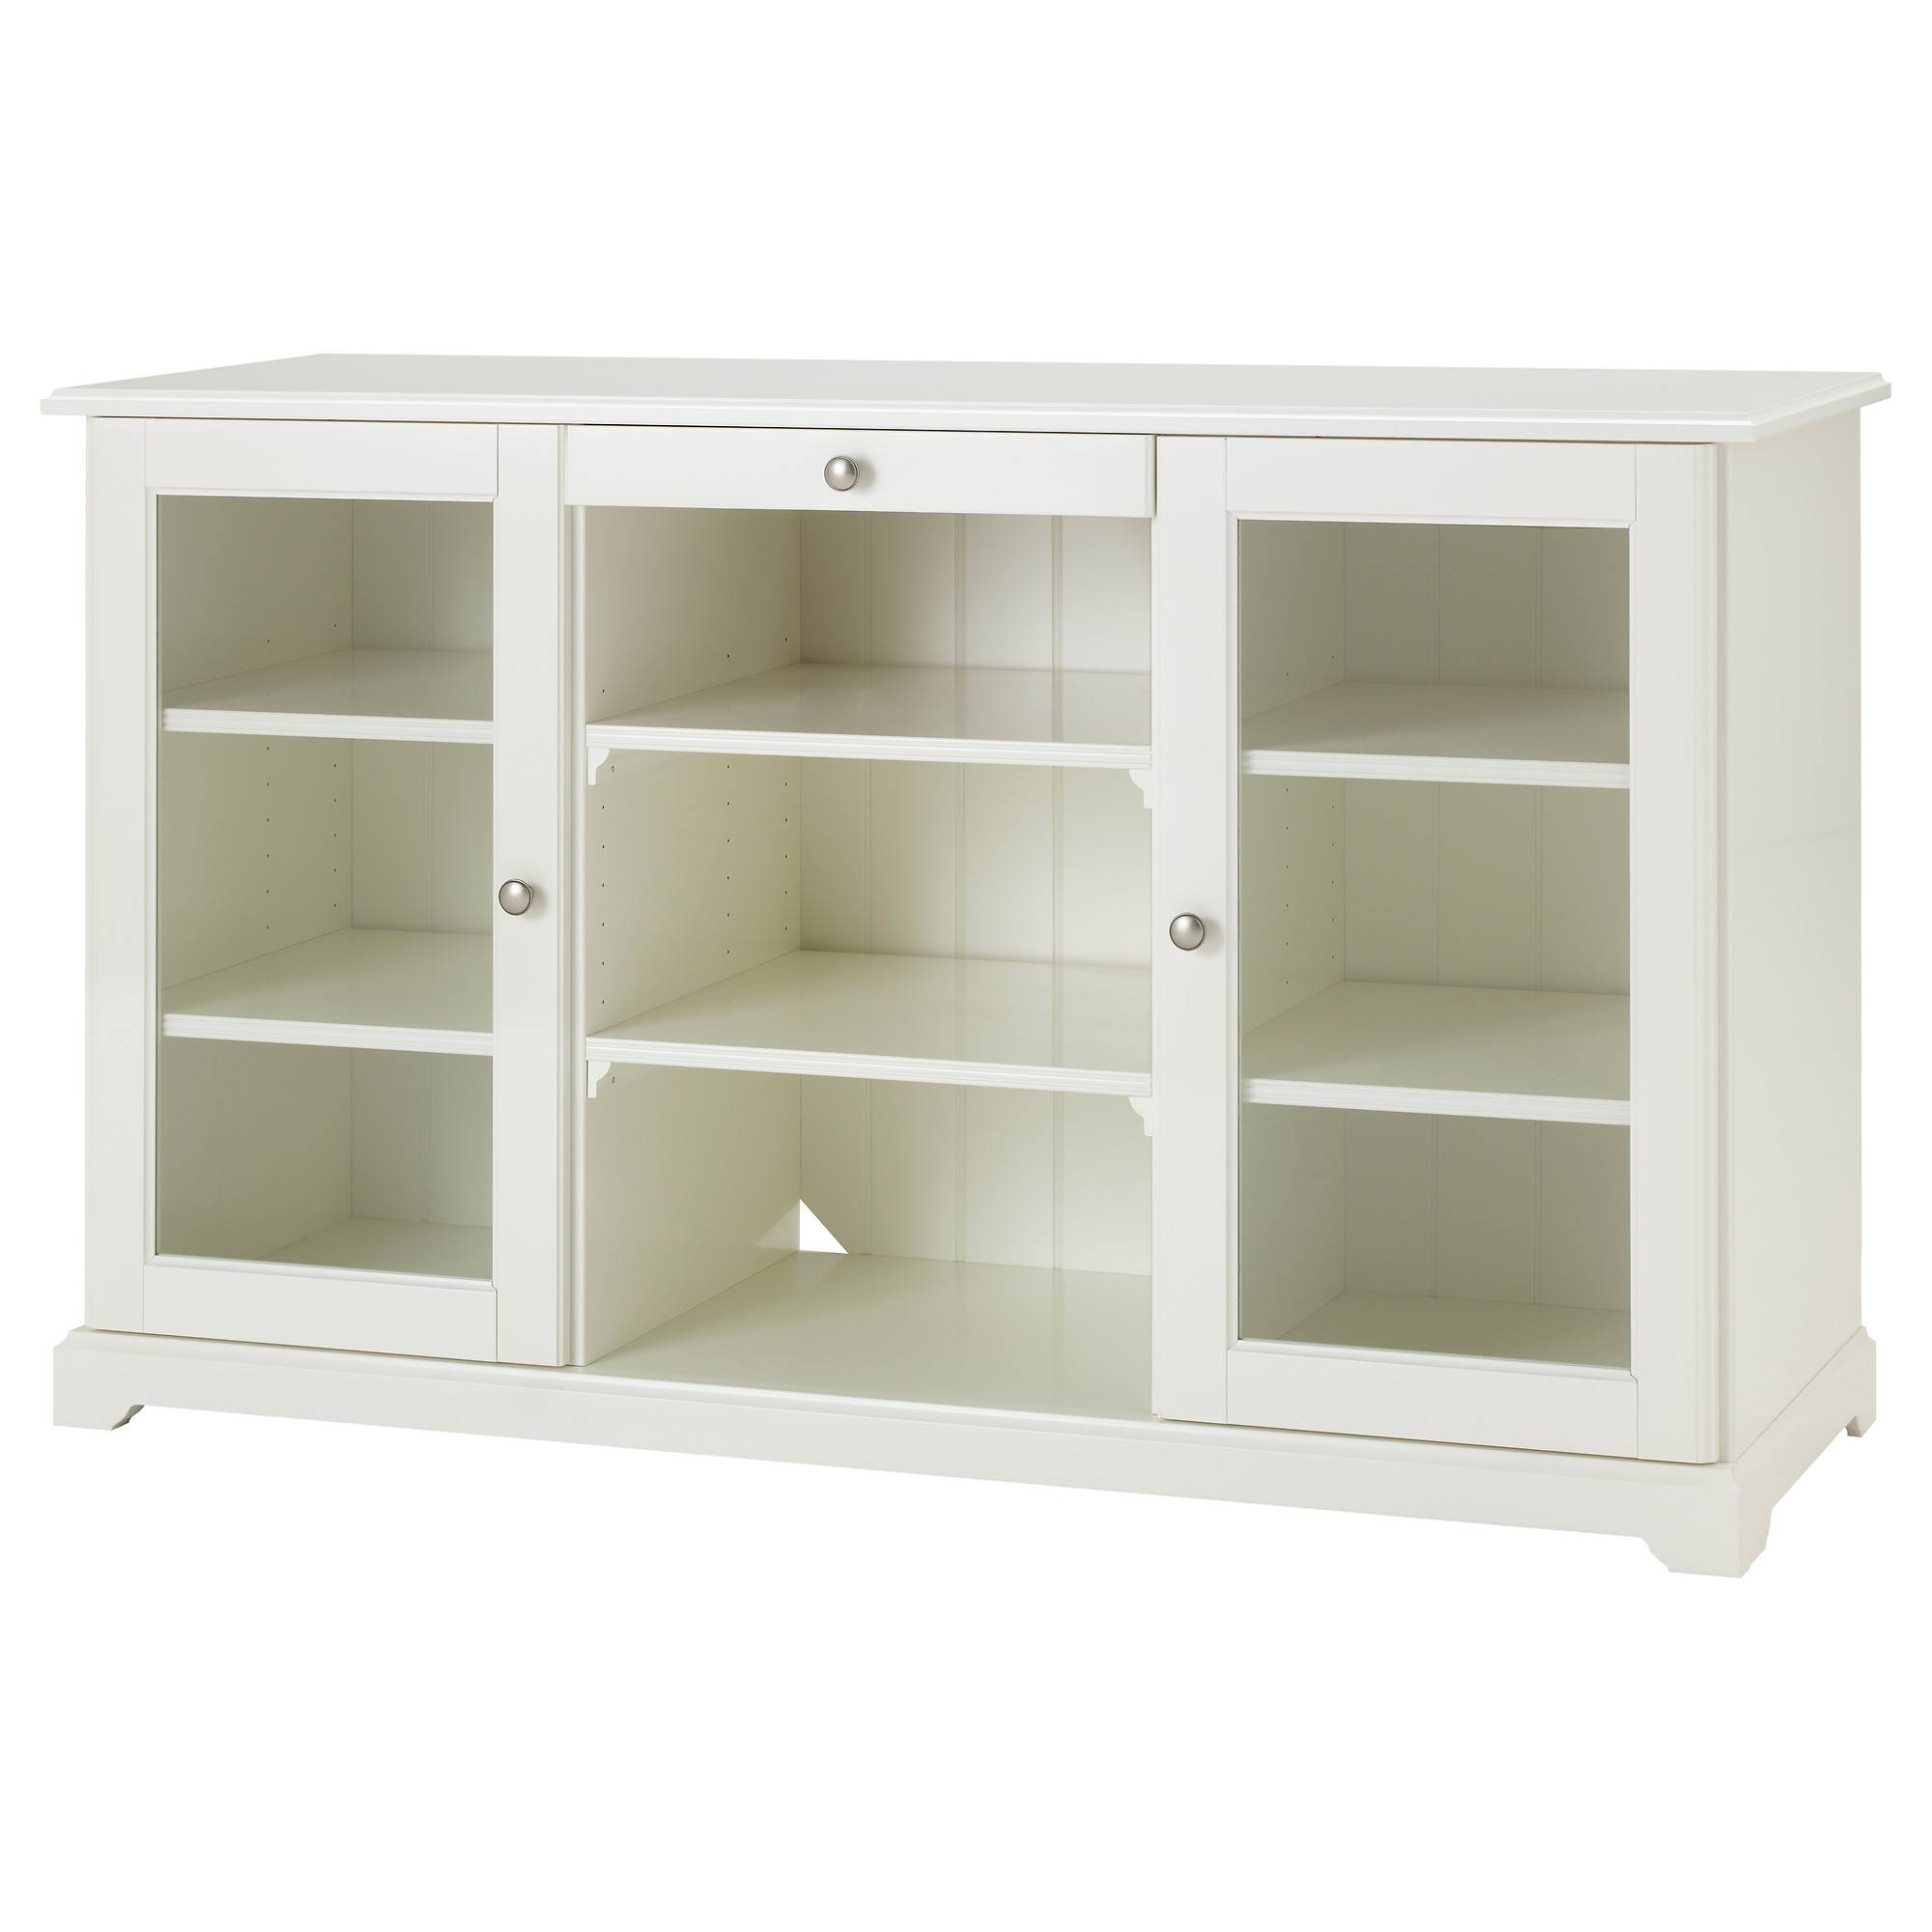 Liatorp Sideboard – White – Ikea In Best And Newest White Sideboards With Glass Doors (#6 of 15)